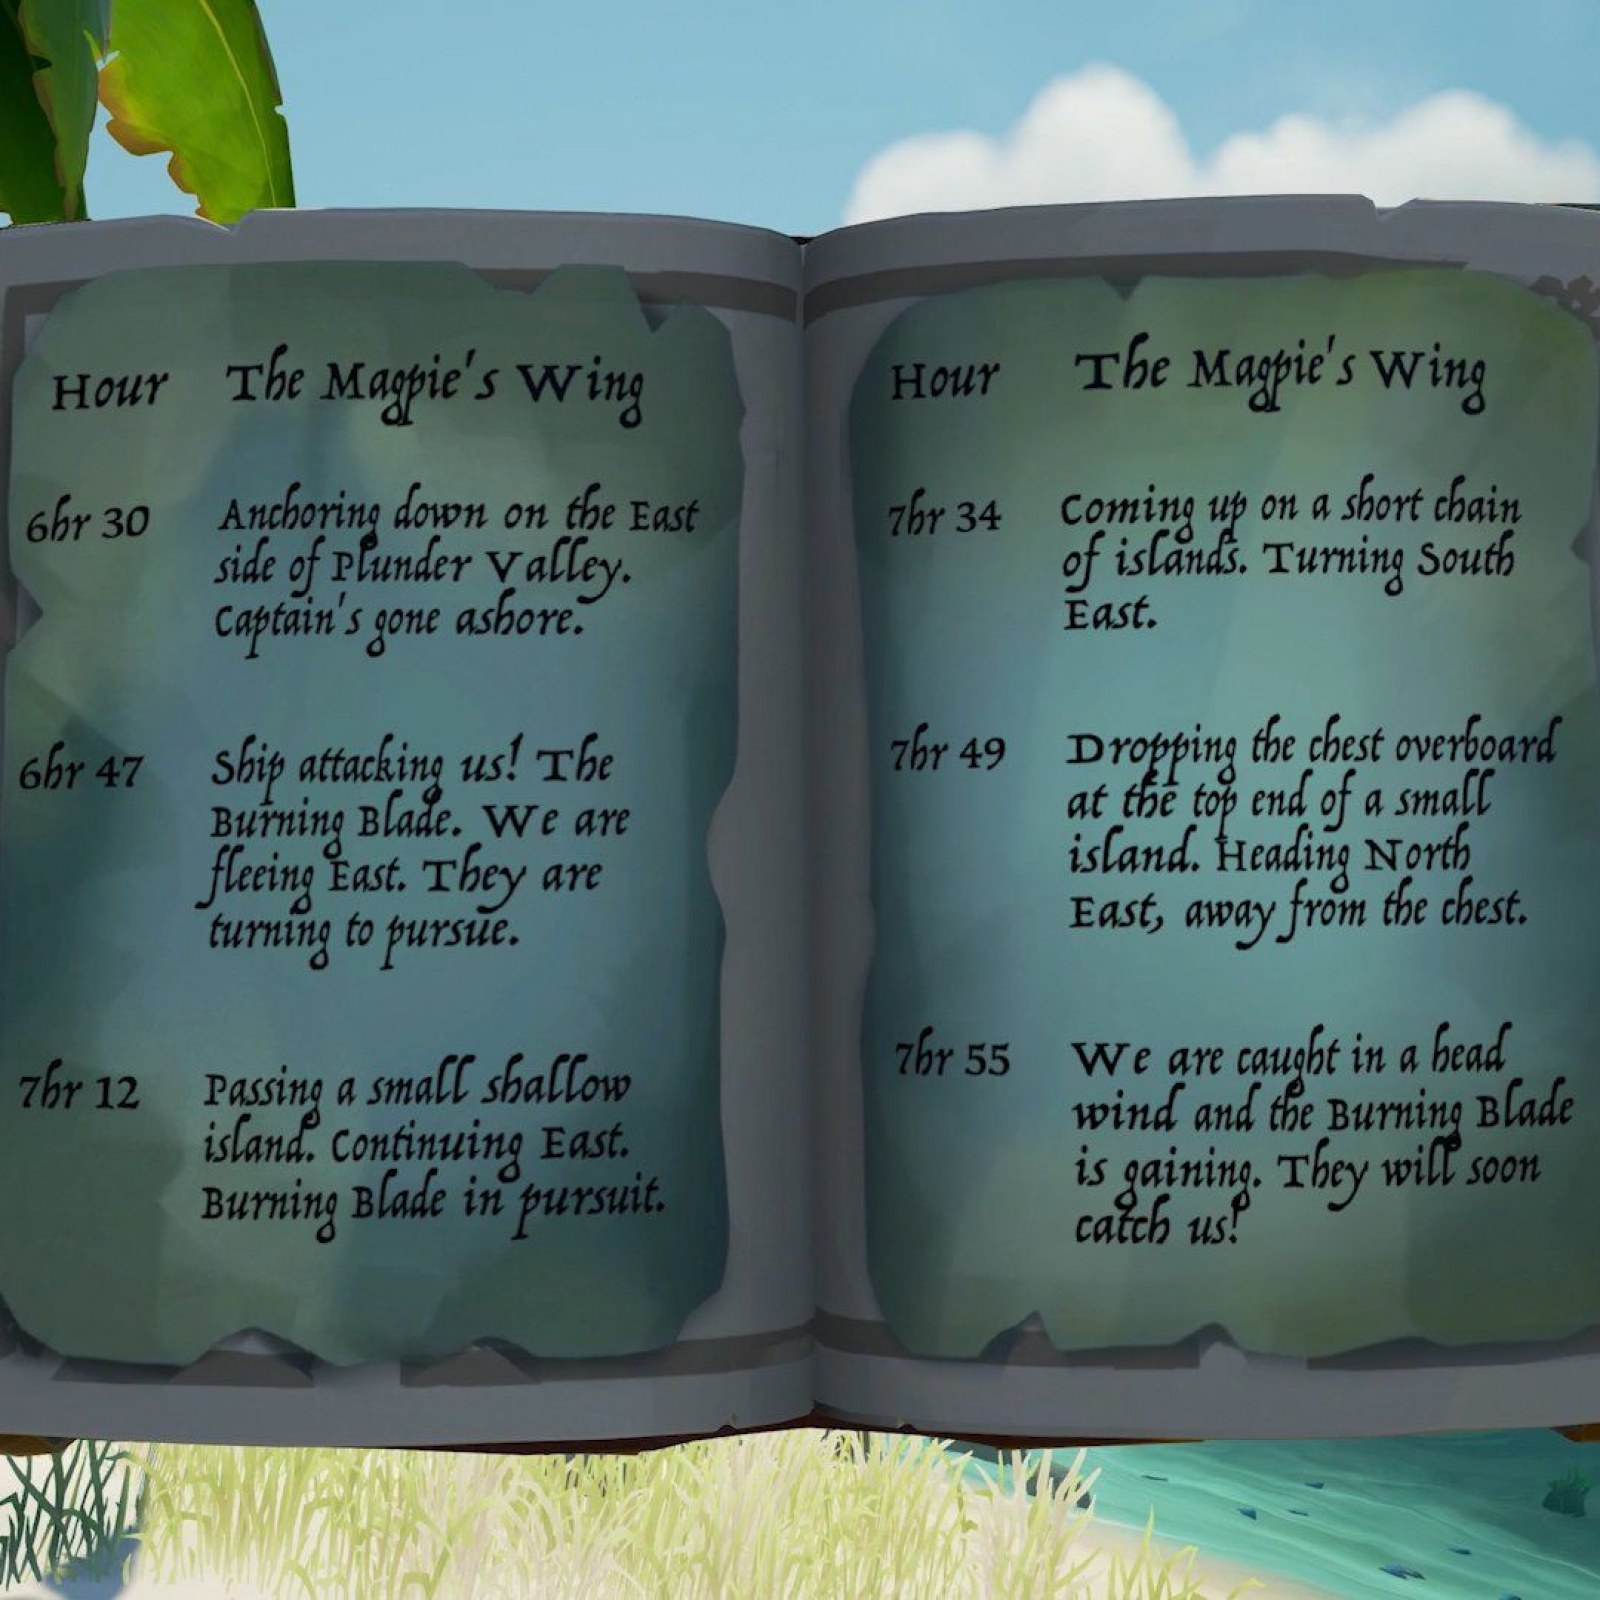 Sea of Thieves' Shroudbreaker Tall Tale Guide: How To Find Ancient